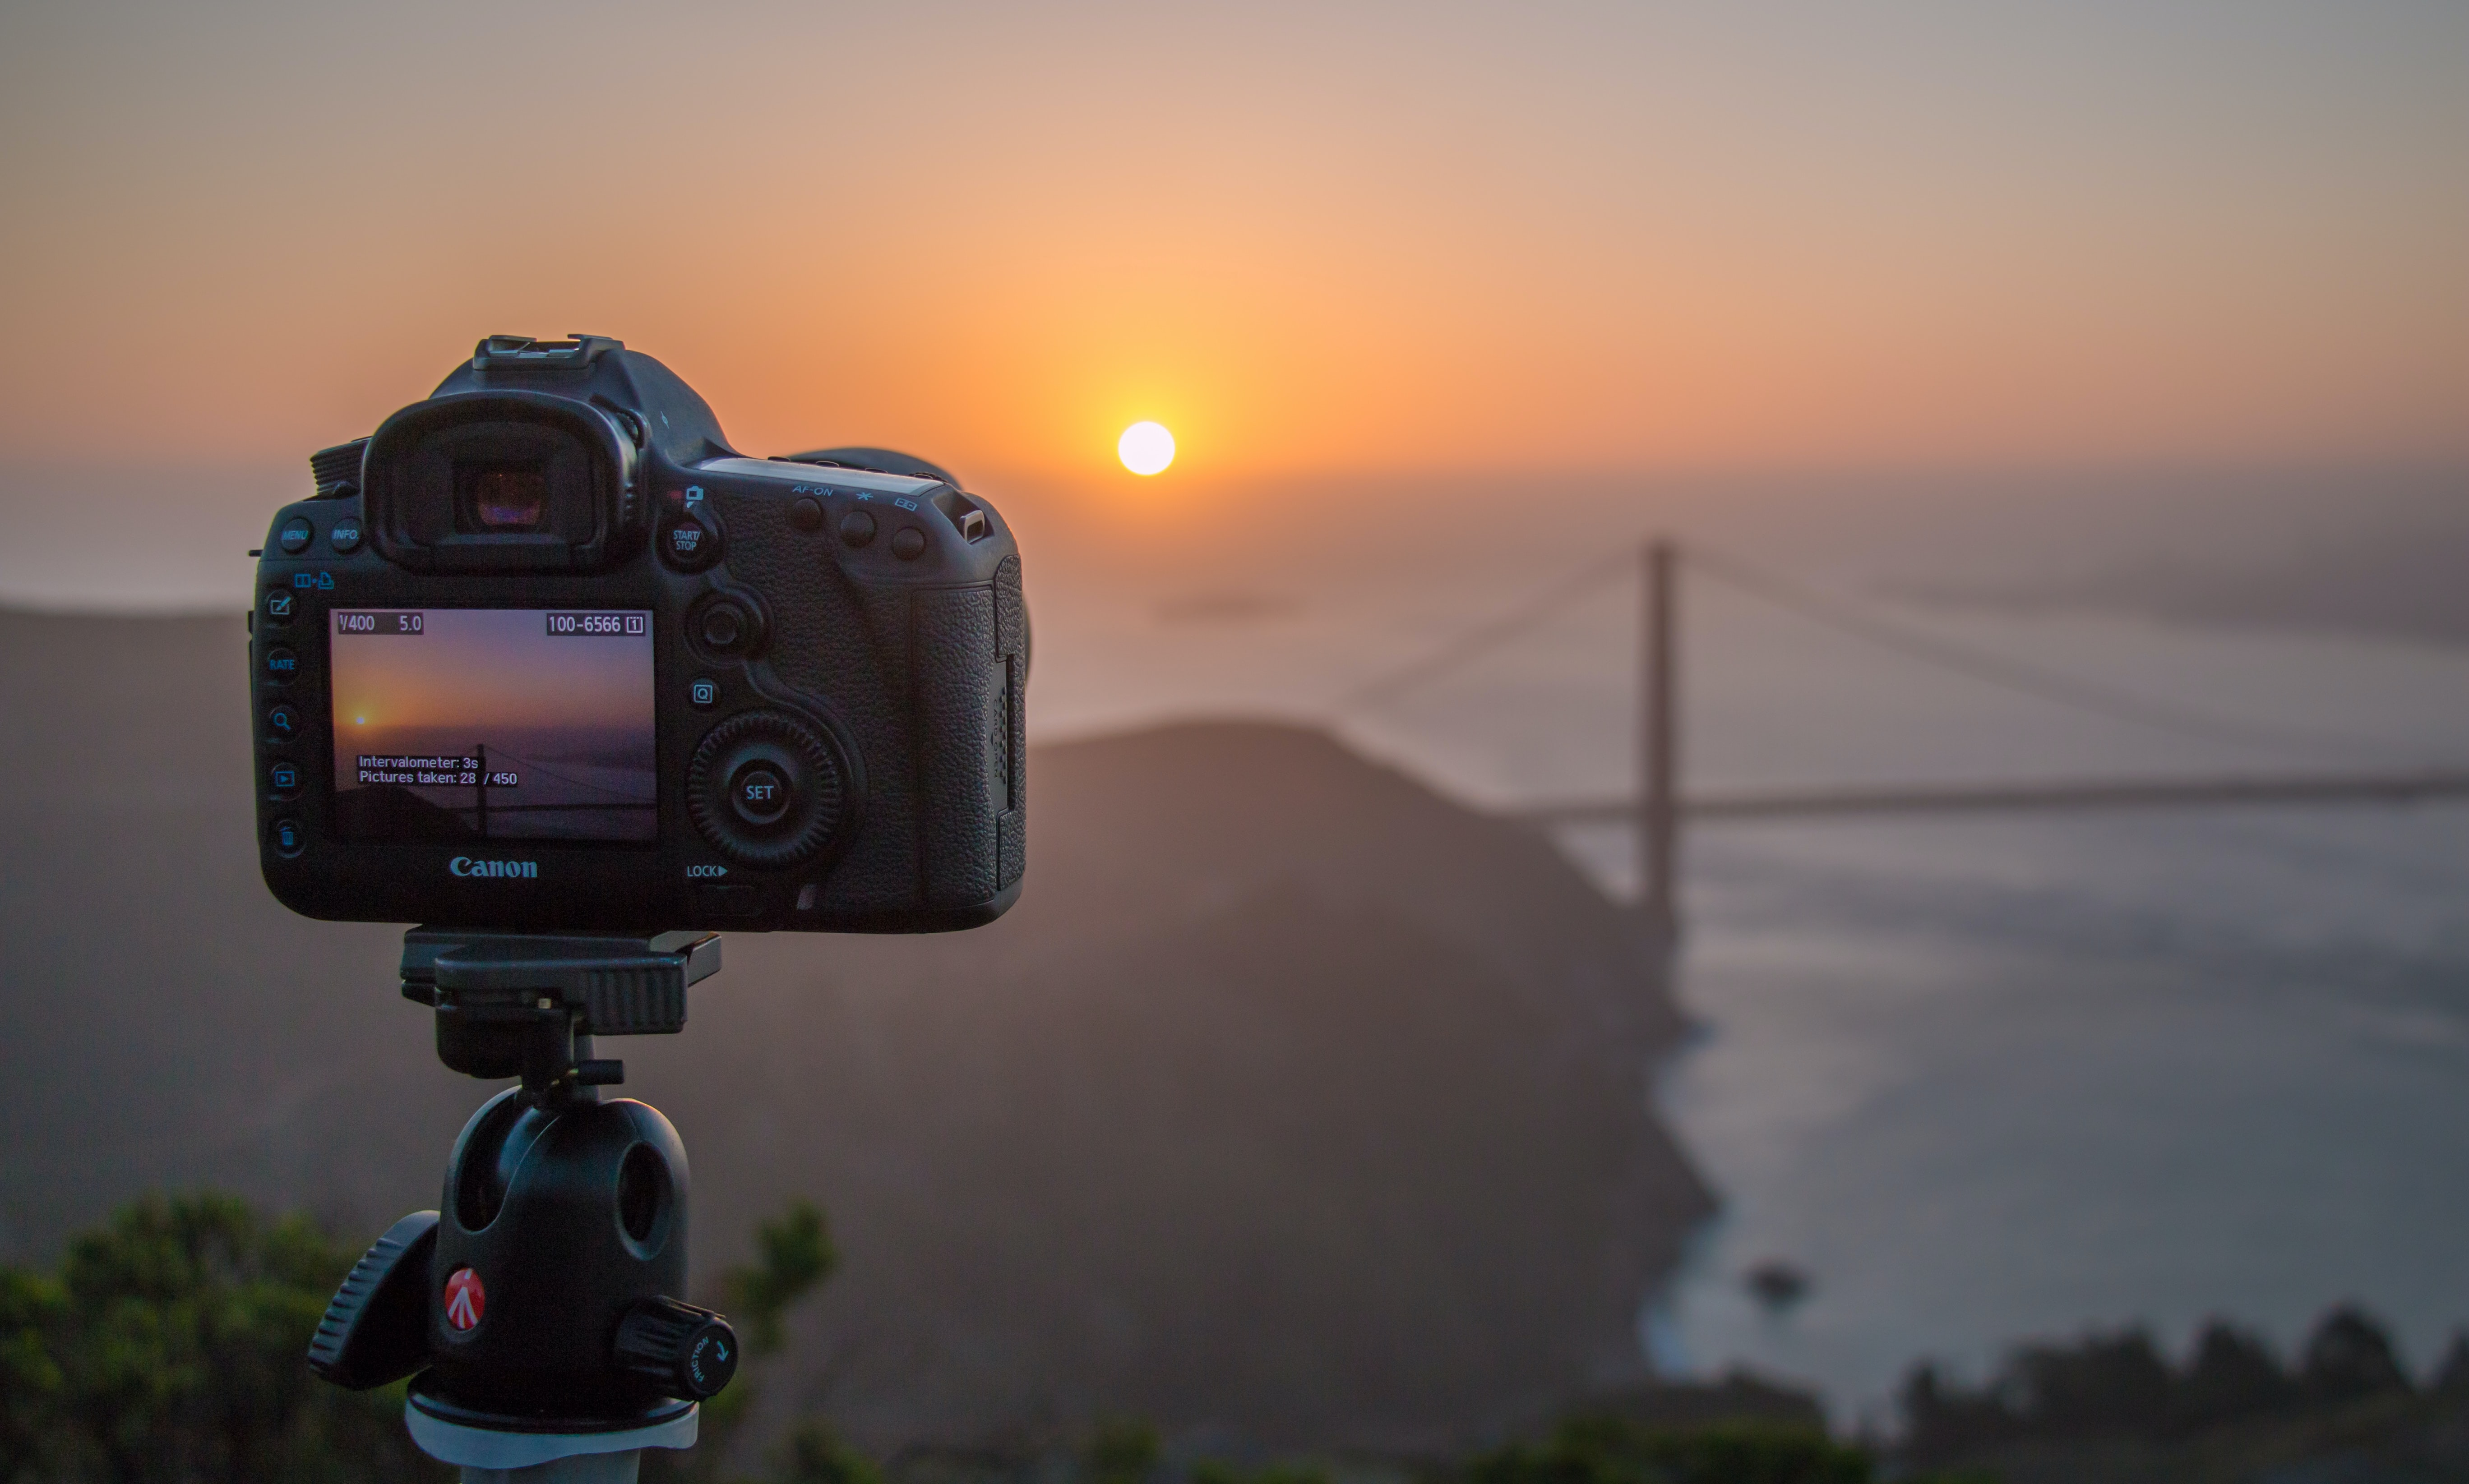 A close-up of a Canon camera photographing the Golden Gate Bridge during sunrise.